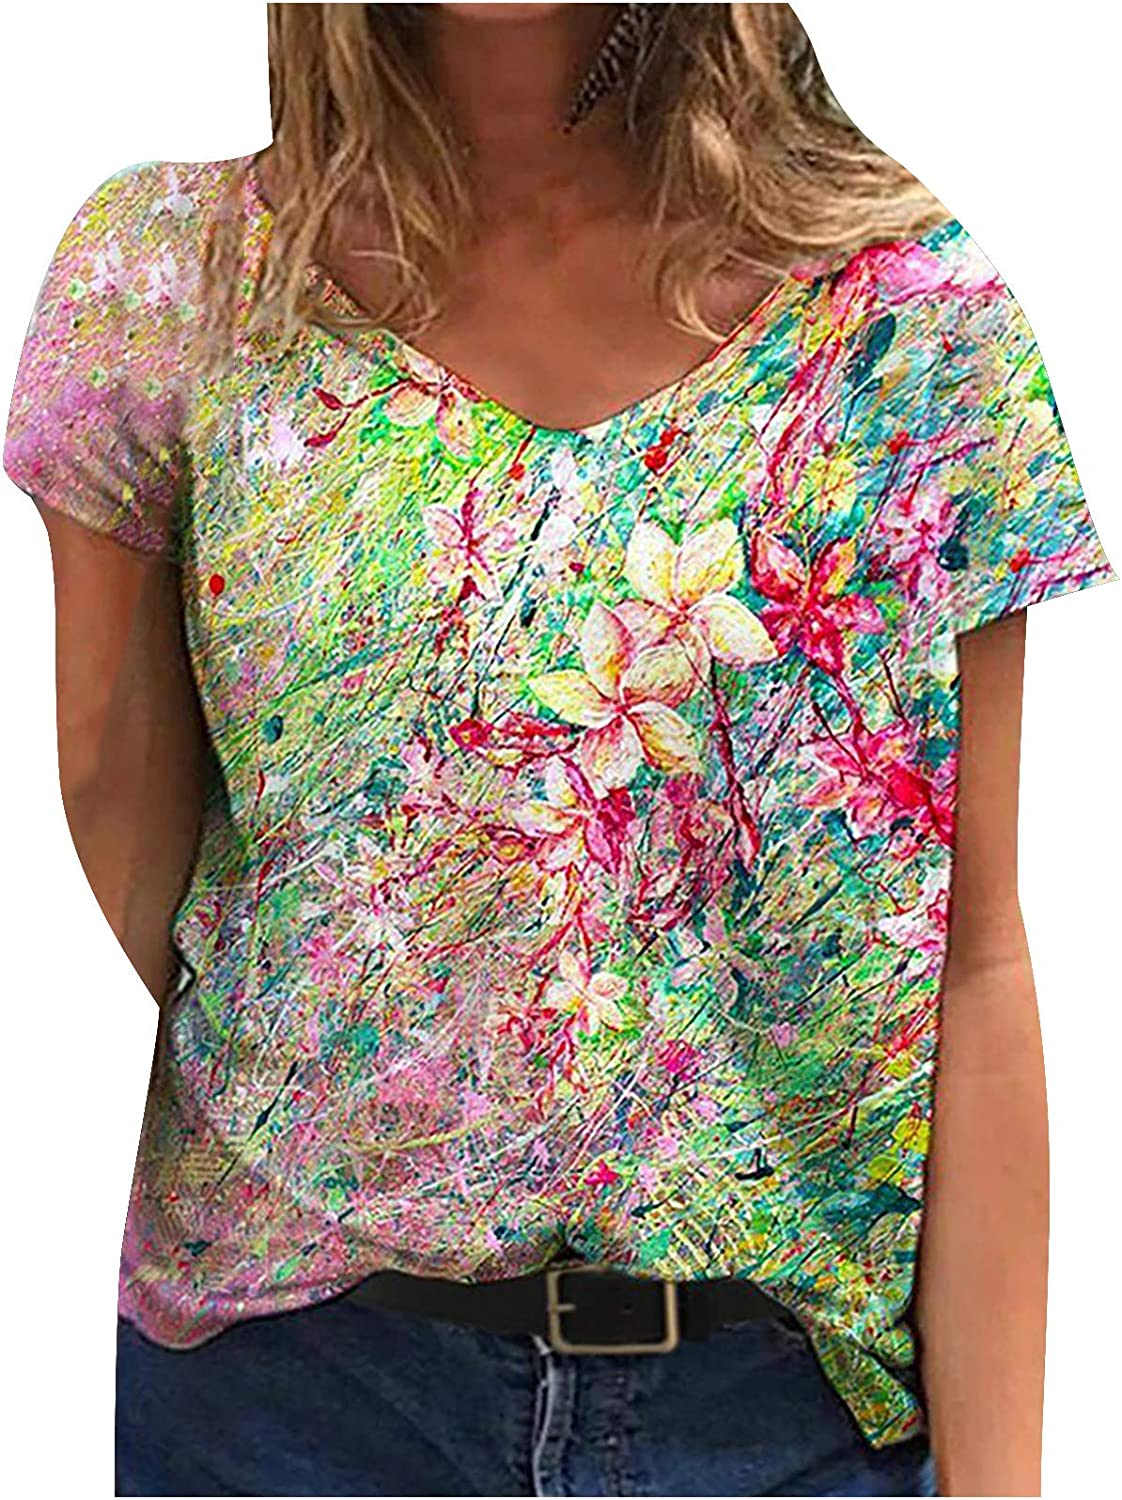 ORT Womens Short Sleeve Shirts Cute Printed V-Neck Tshirts Blouse Summer Casual Tops Loose Fit Graphic Tees